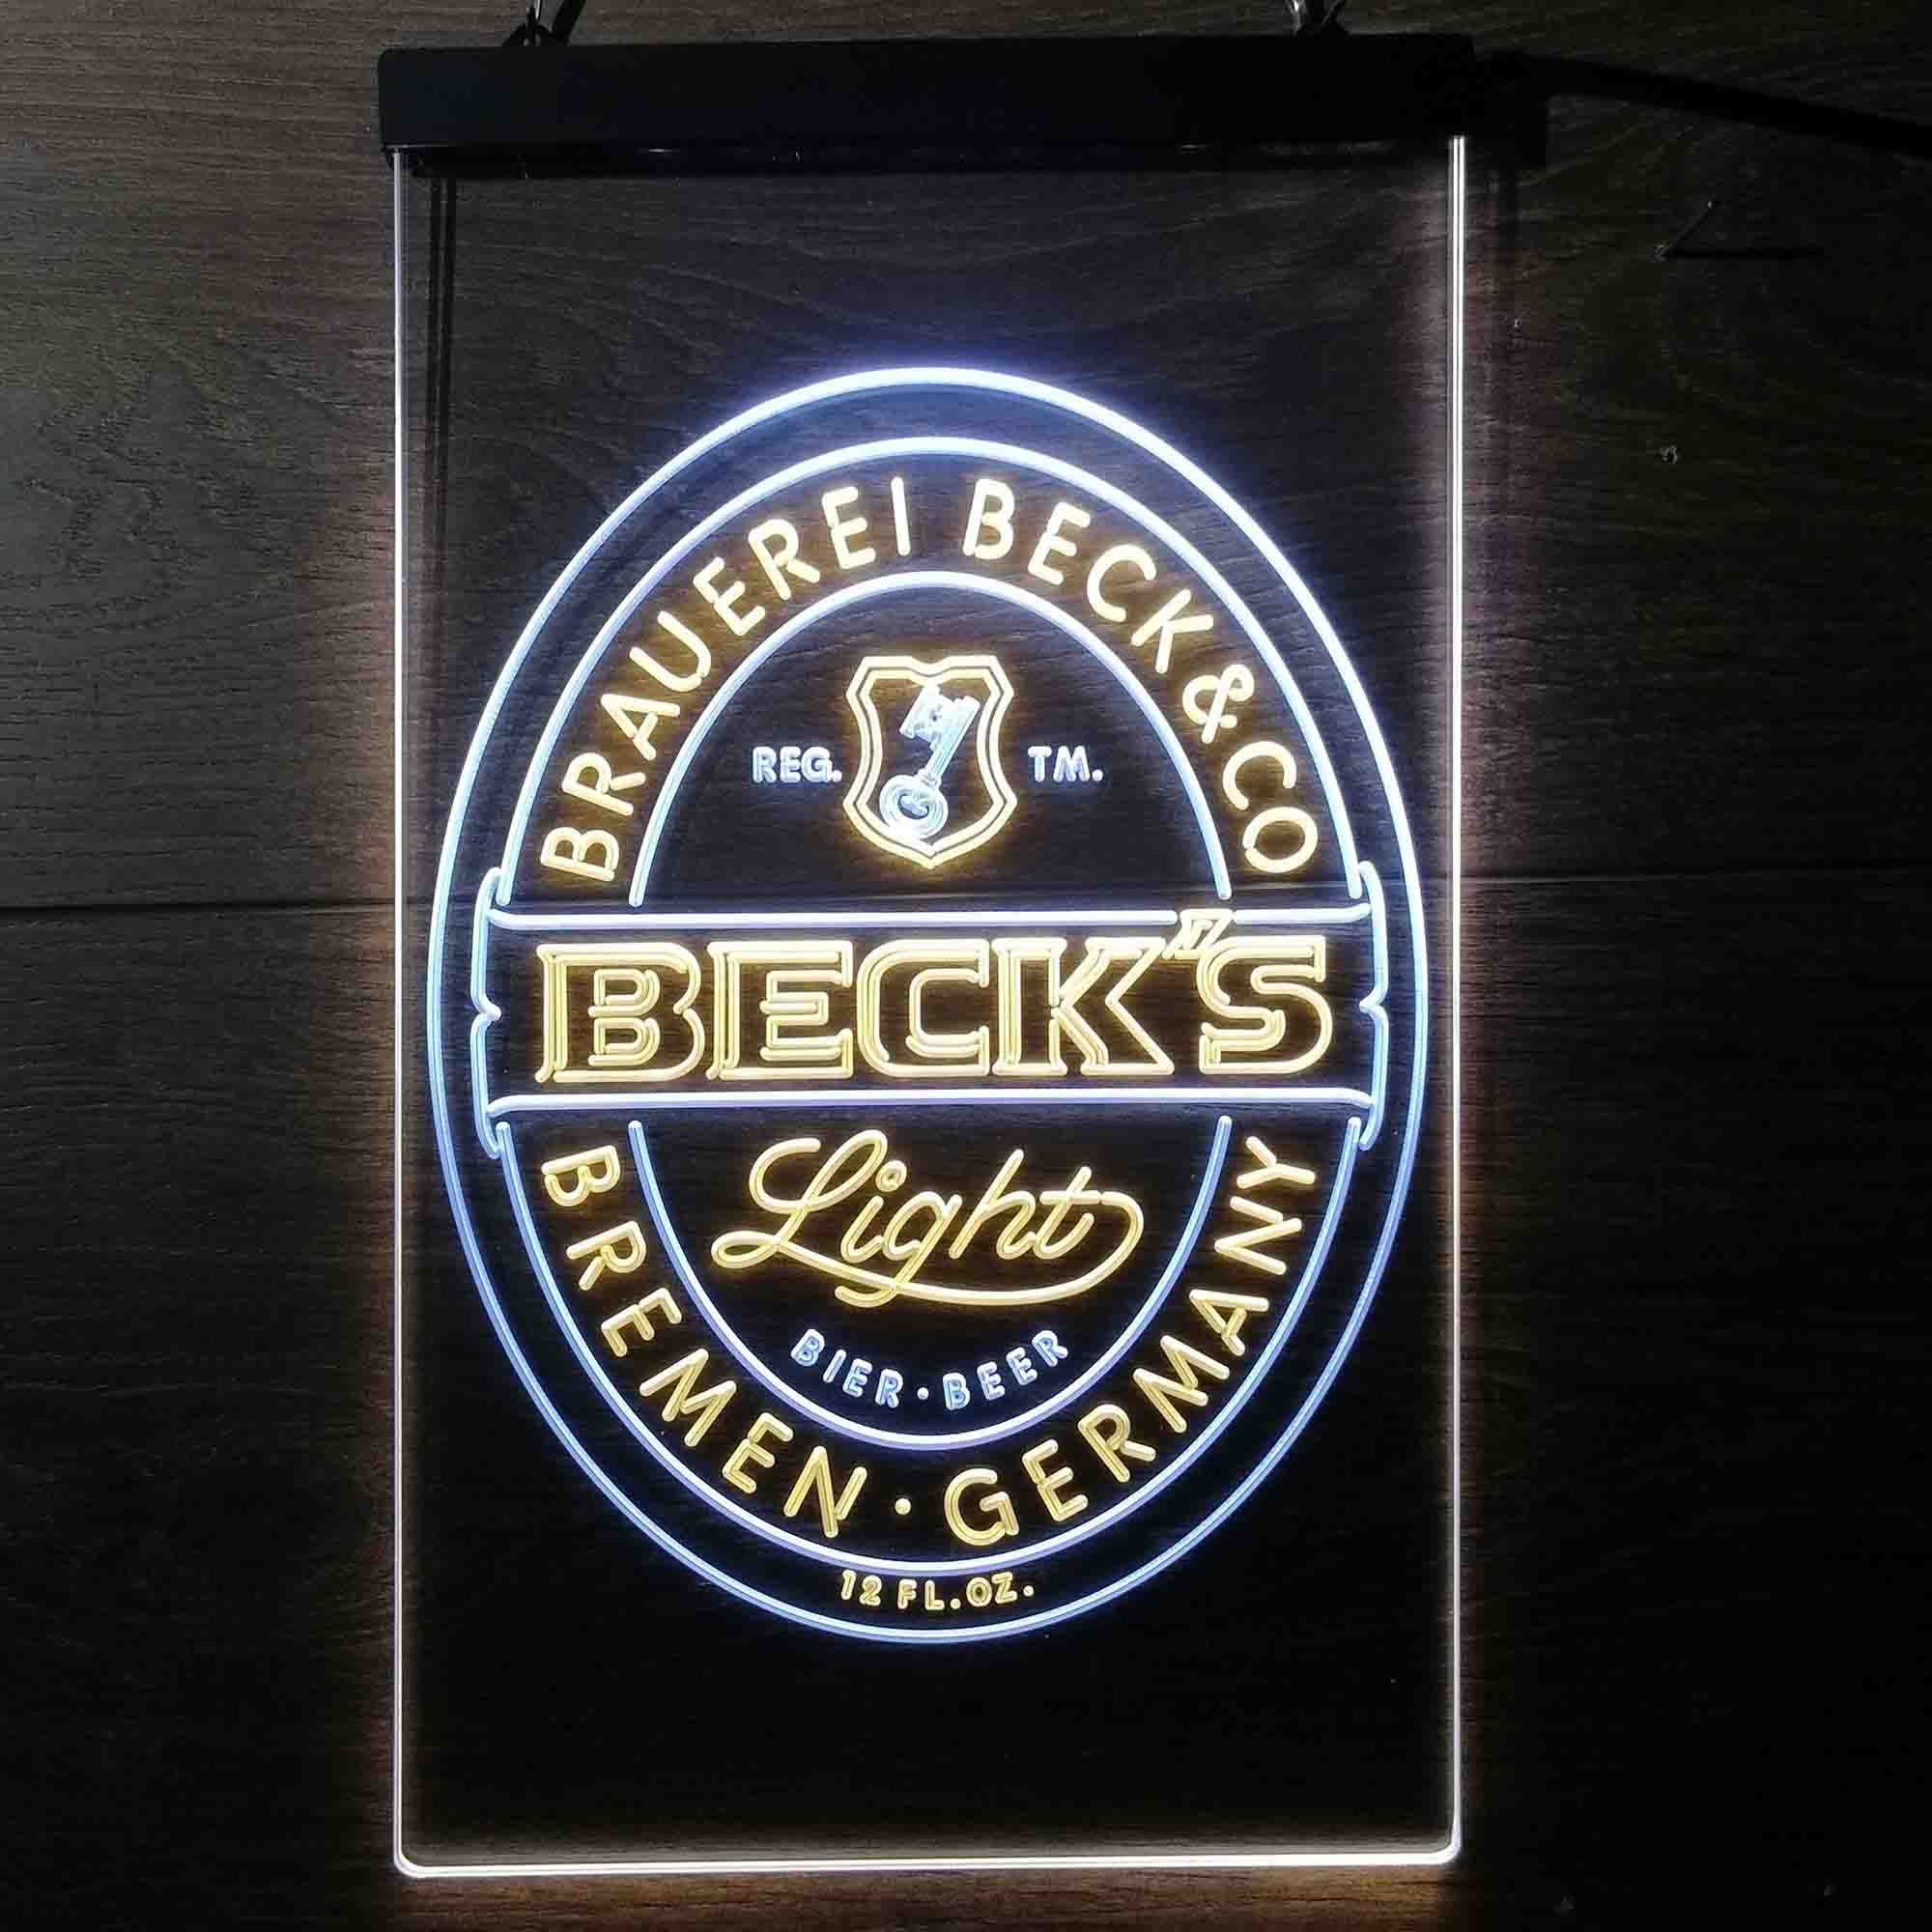 Beck's Light Beer Germany Neon-Like LED Sign